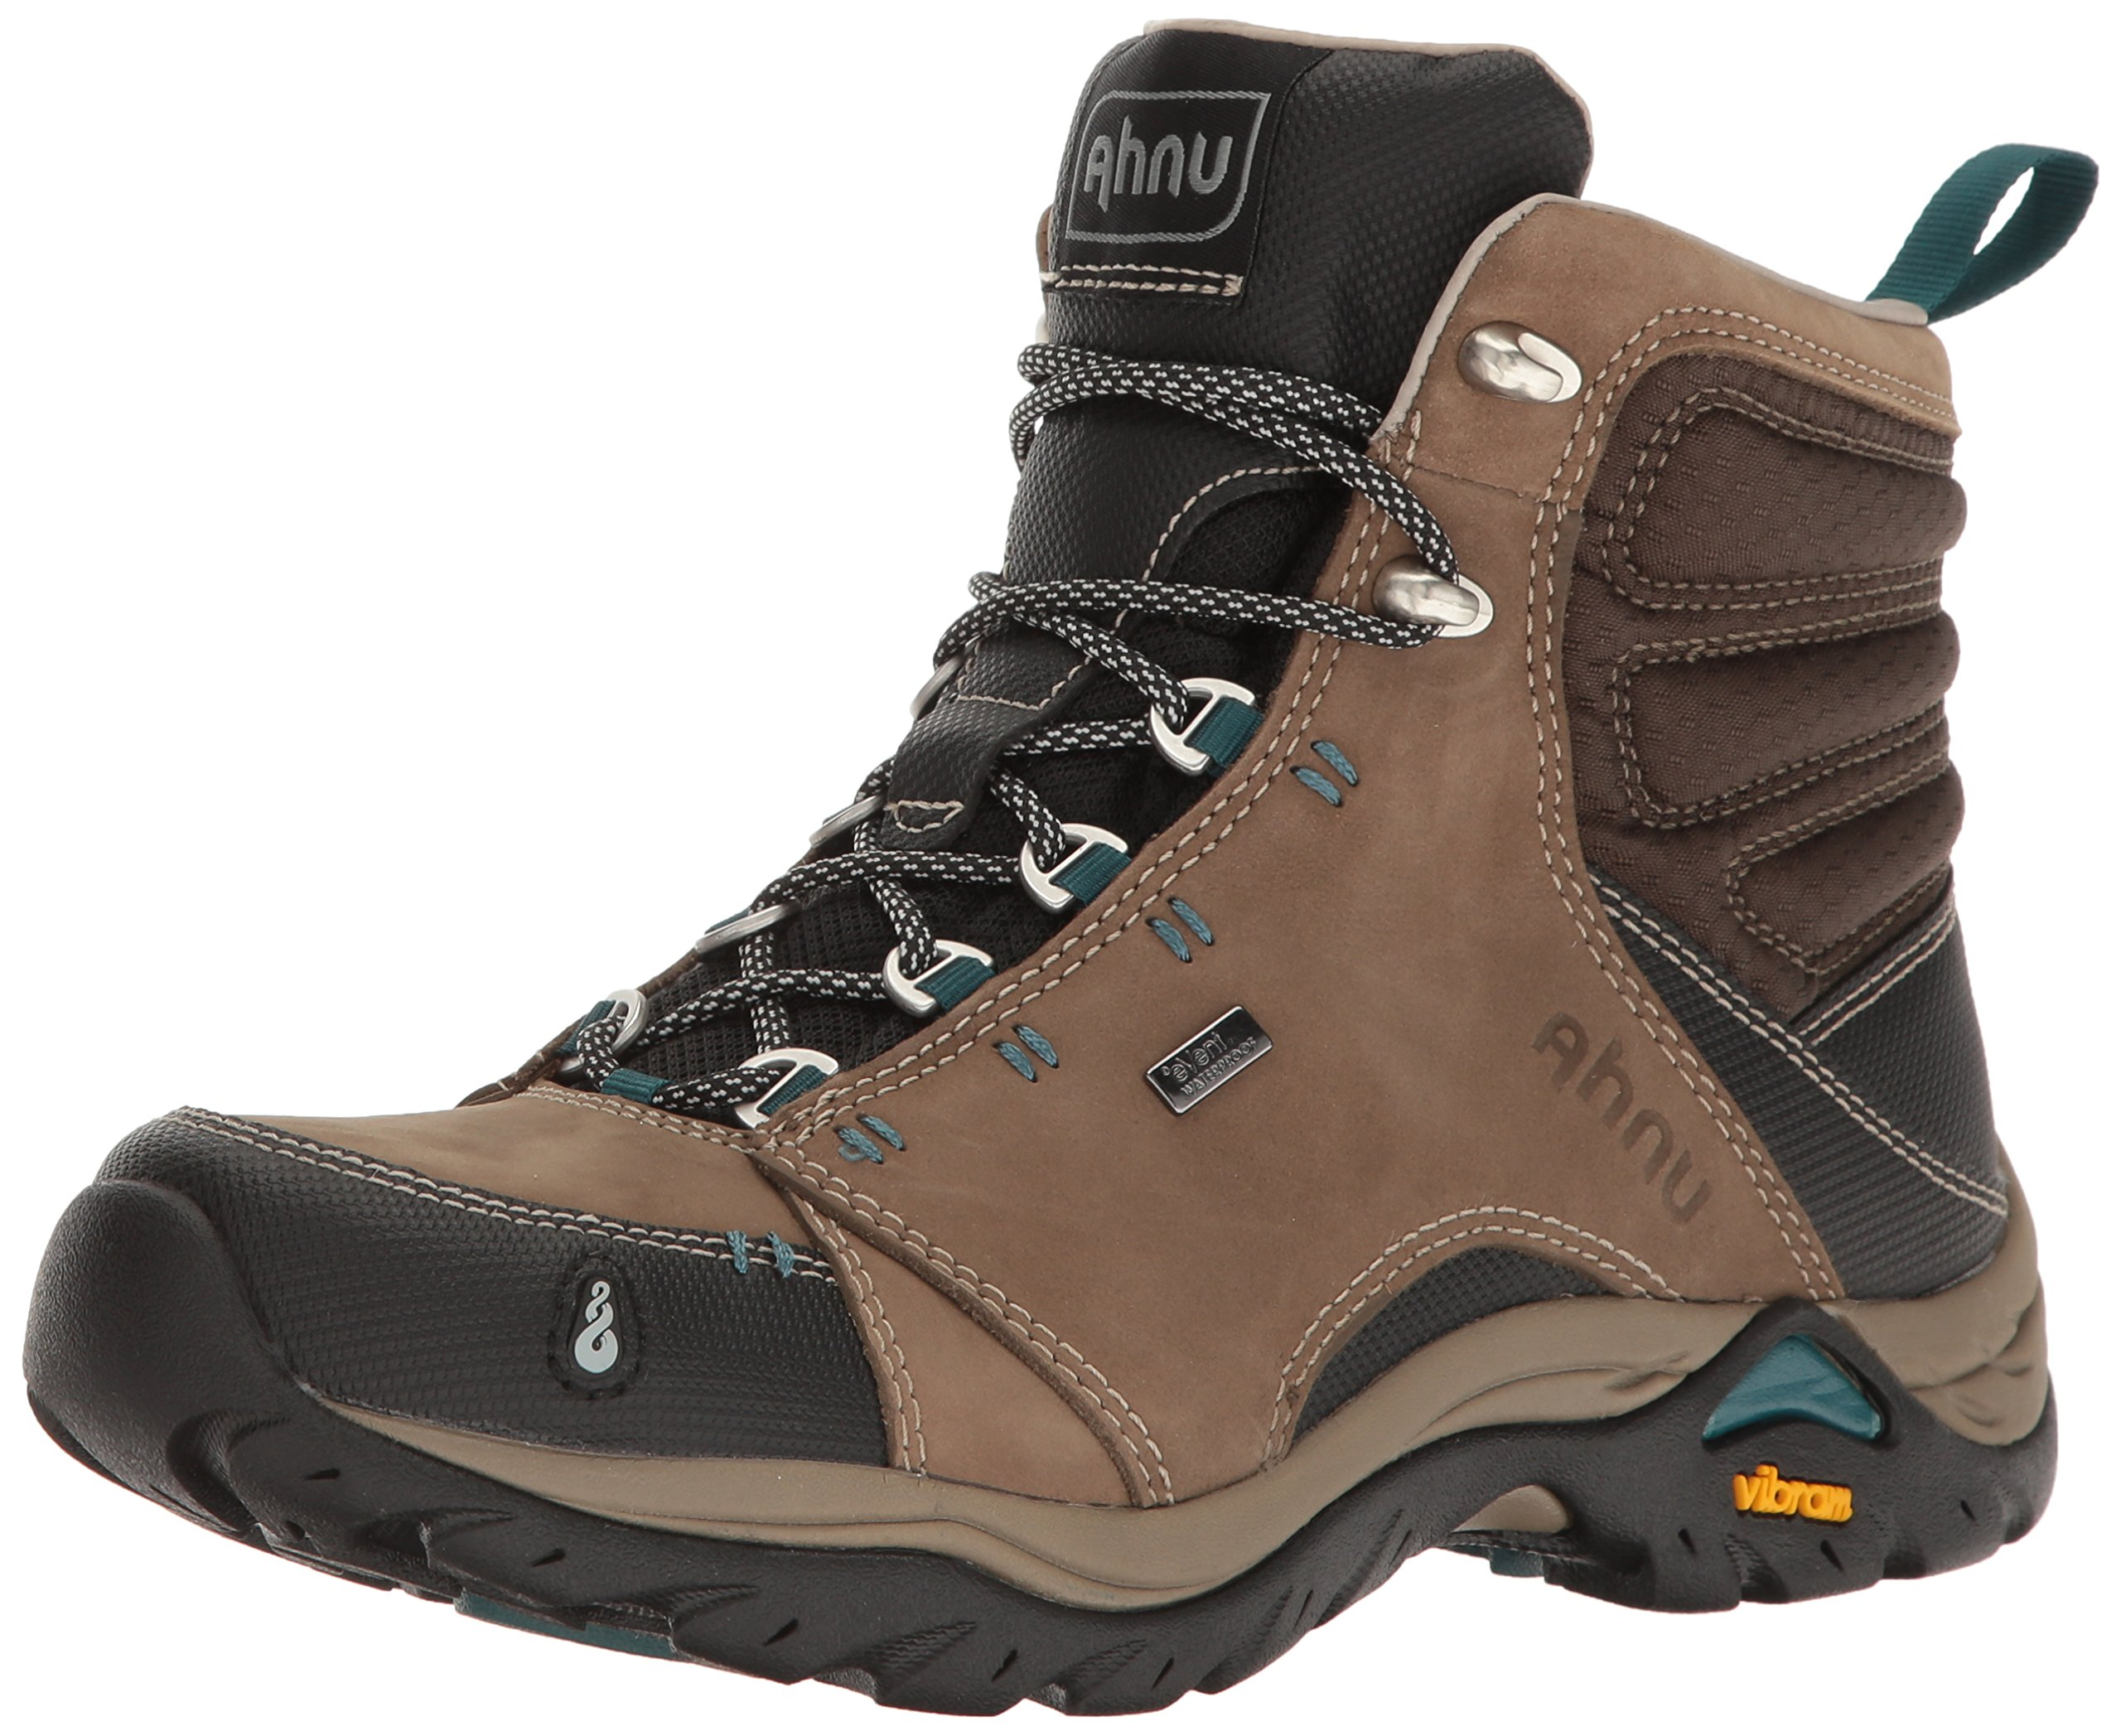 Ahnu Women's W Montara Waterproof Hiking Boot, Muir Woods Classic, 9 M US